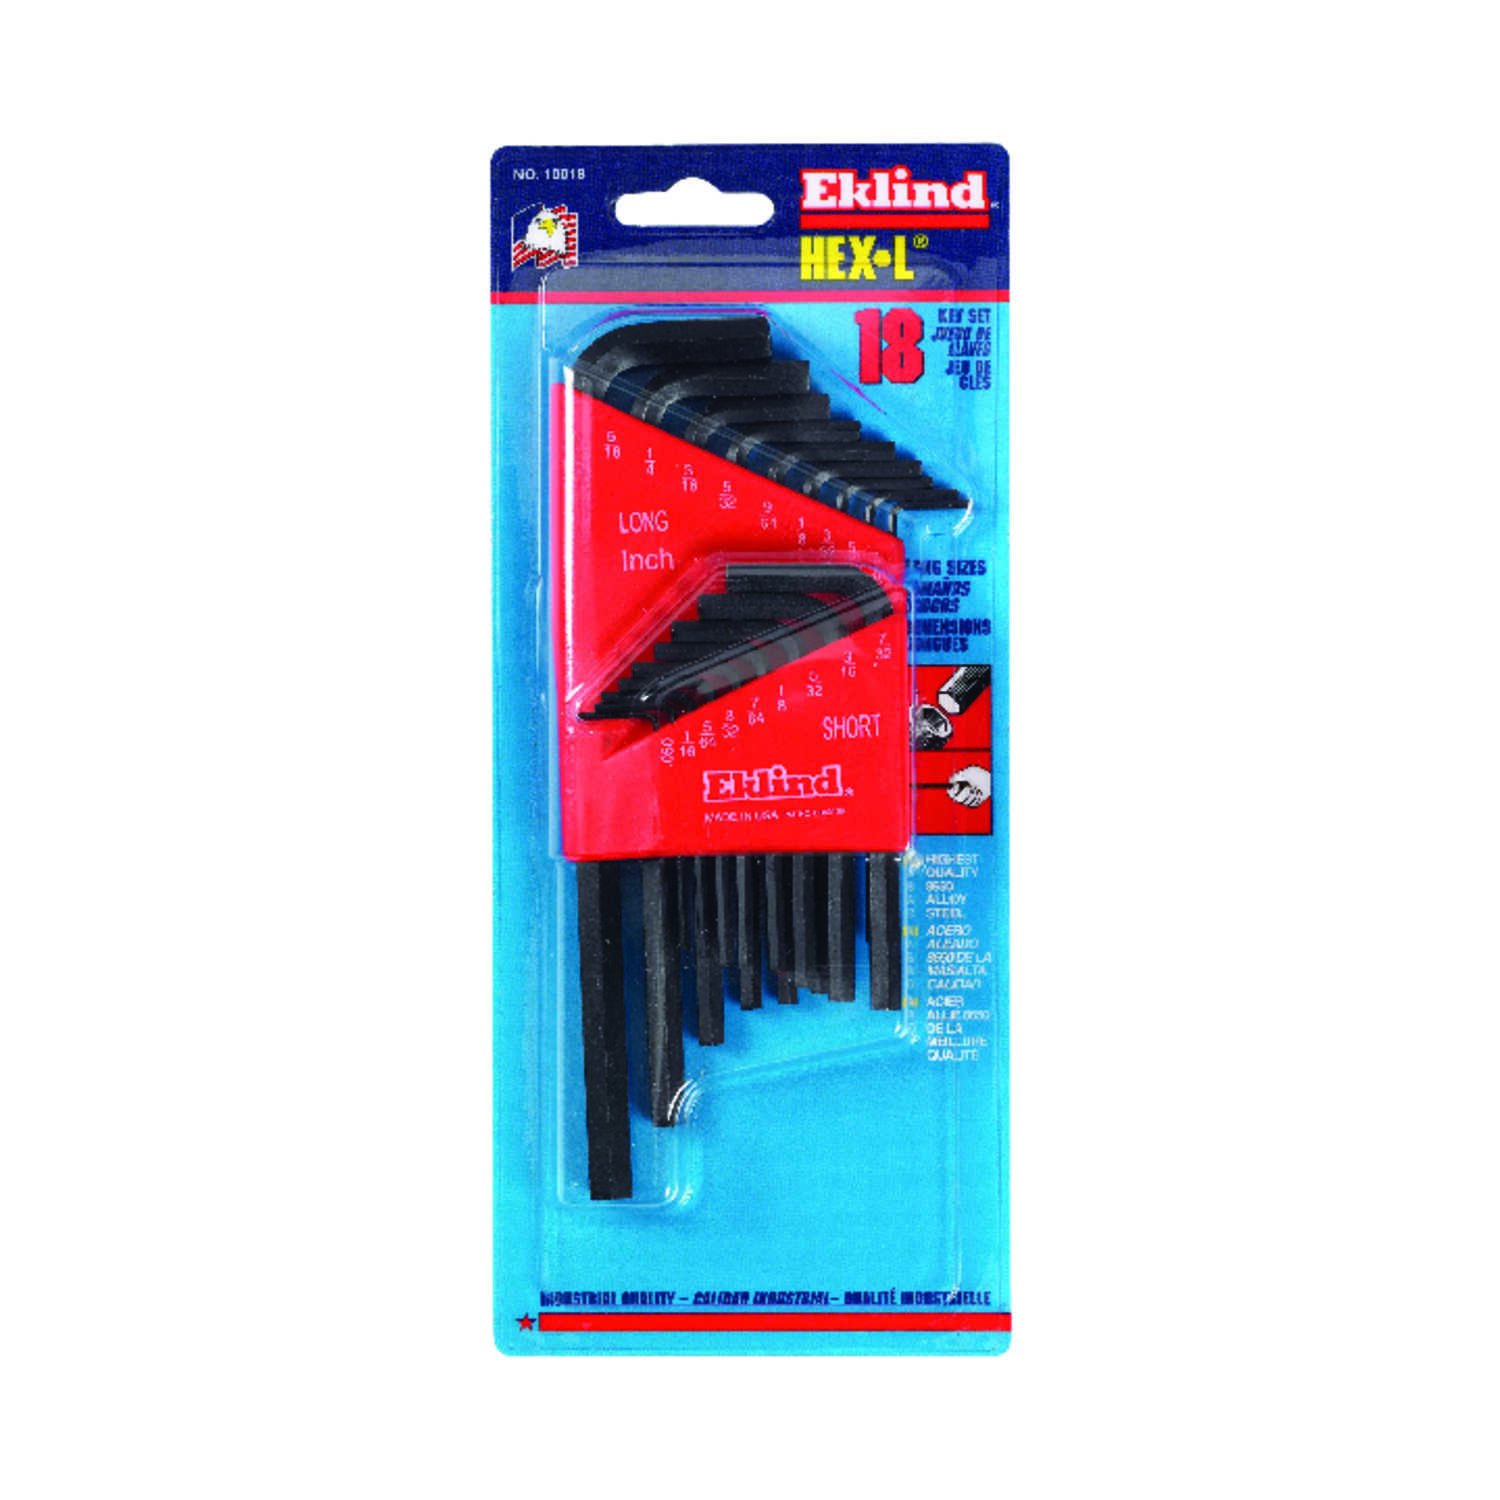 Eklind Tool  Hex-L  .050 to 5/16  SAE  Long and Short Arm  Hex L-Key Set  Multi-Size in. 18 pc.